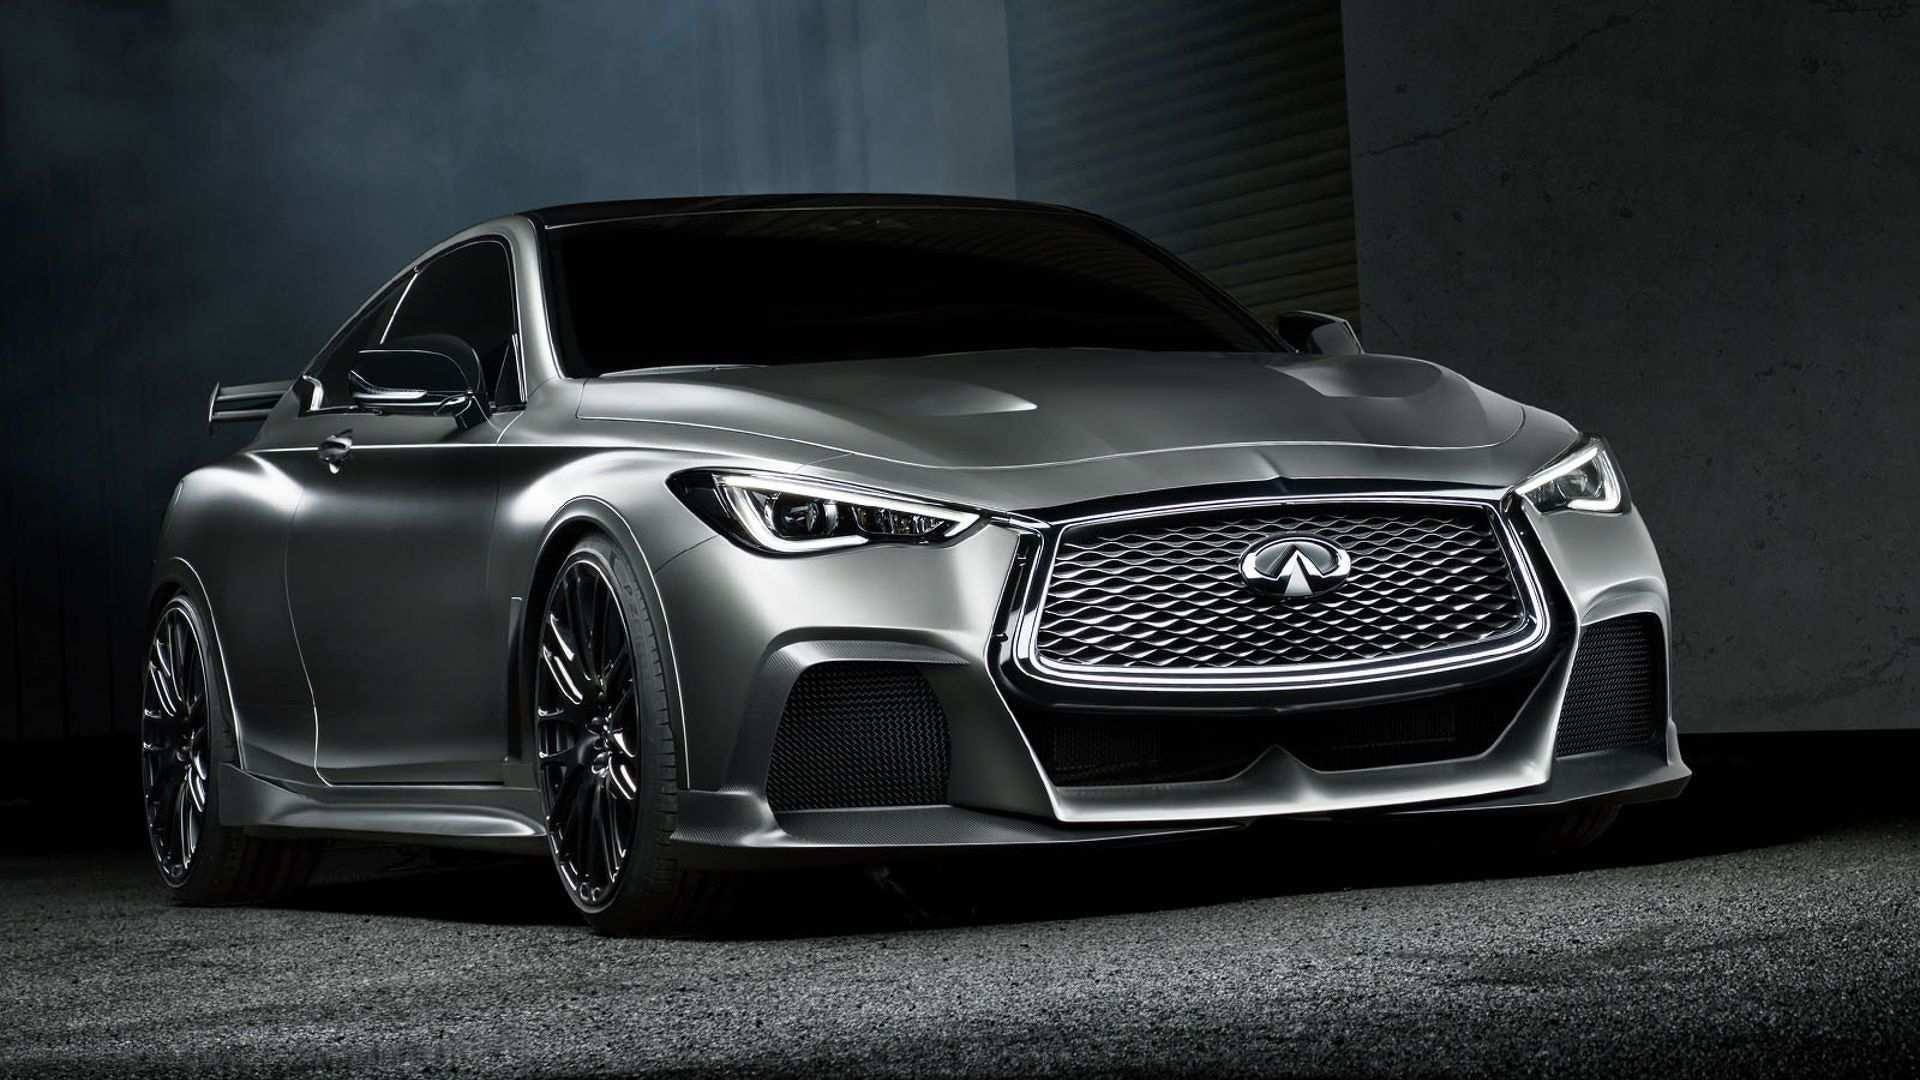 37 Gallery of The 2019 Infiniti Q60 Coupe Review Specs And Release Date Spy Shoot by The 2019 Infiniti Q60 Coupe Review Specs And Release Date